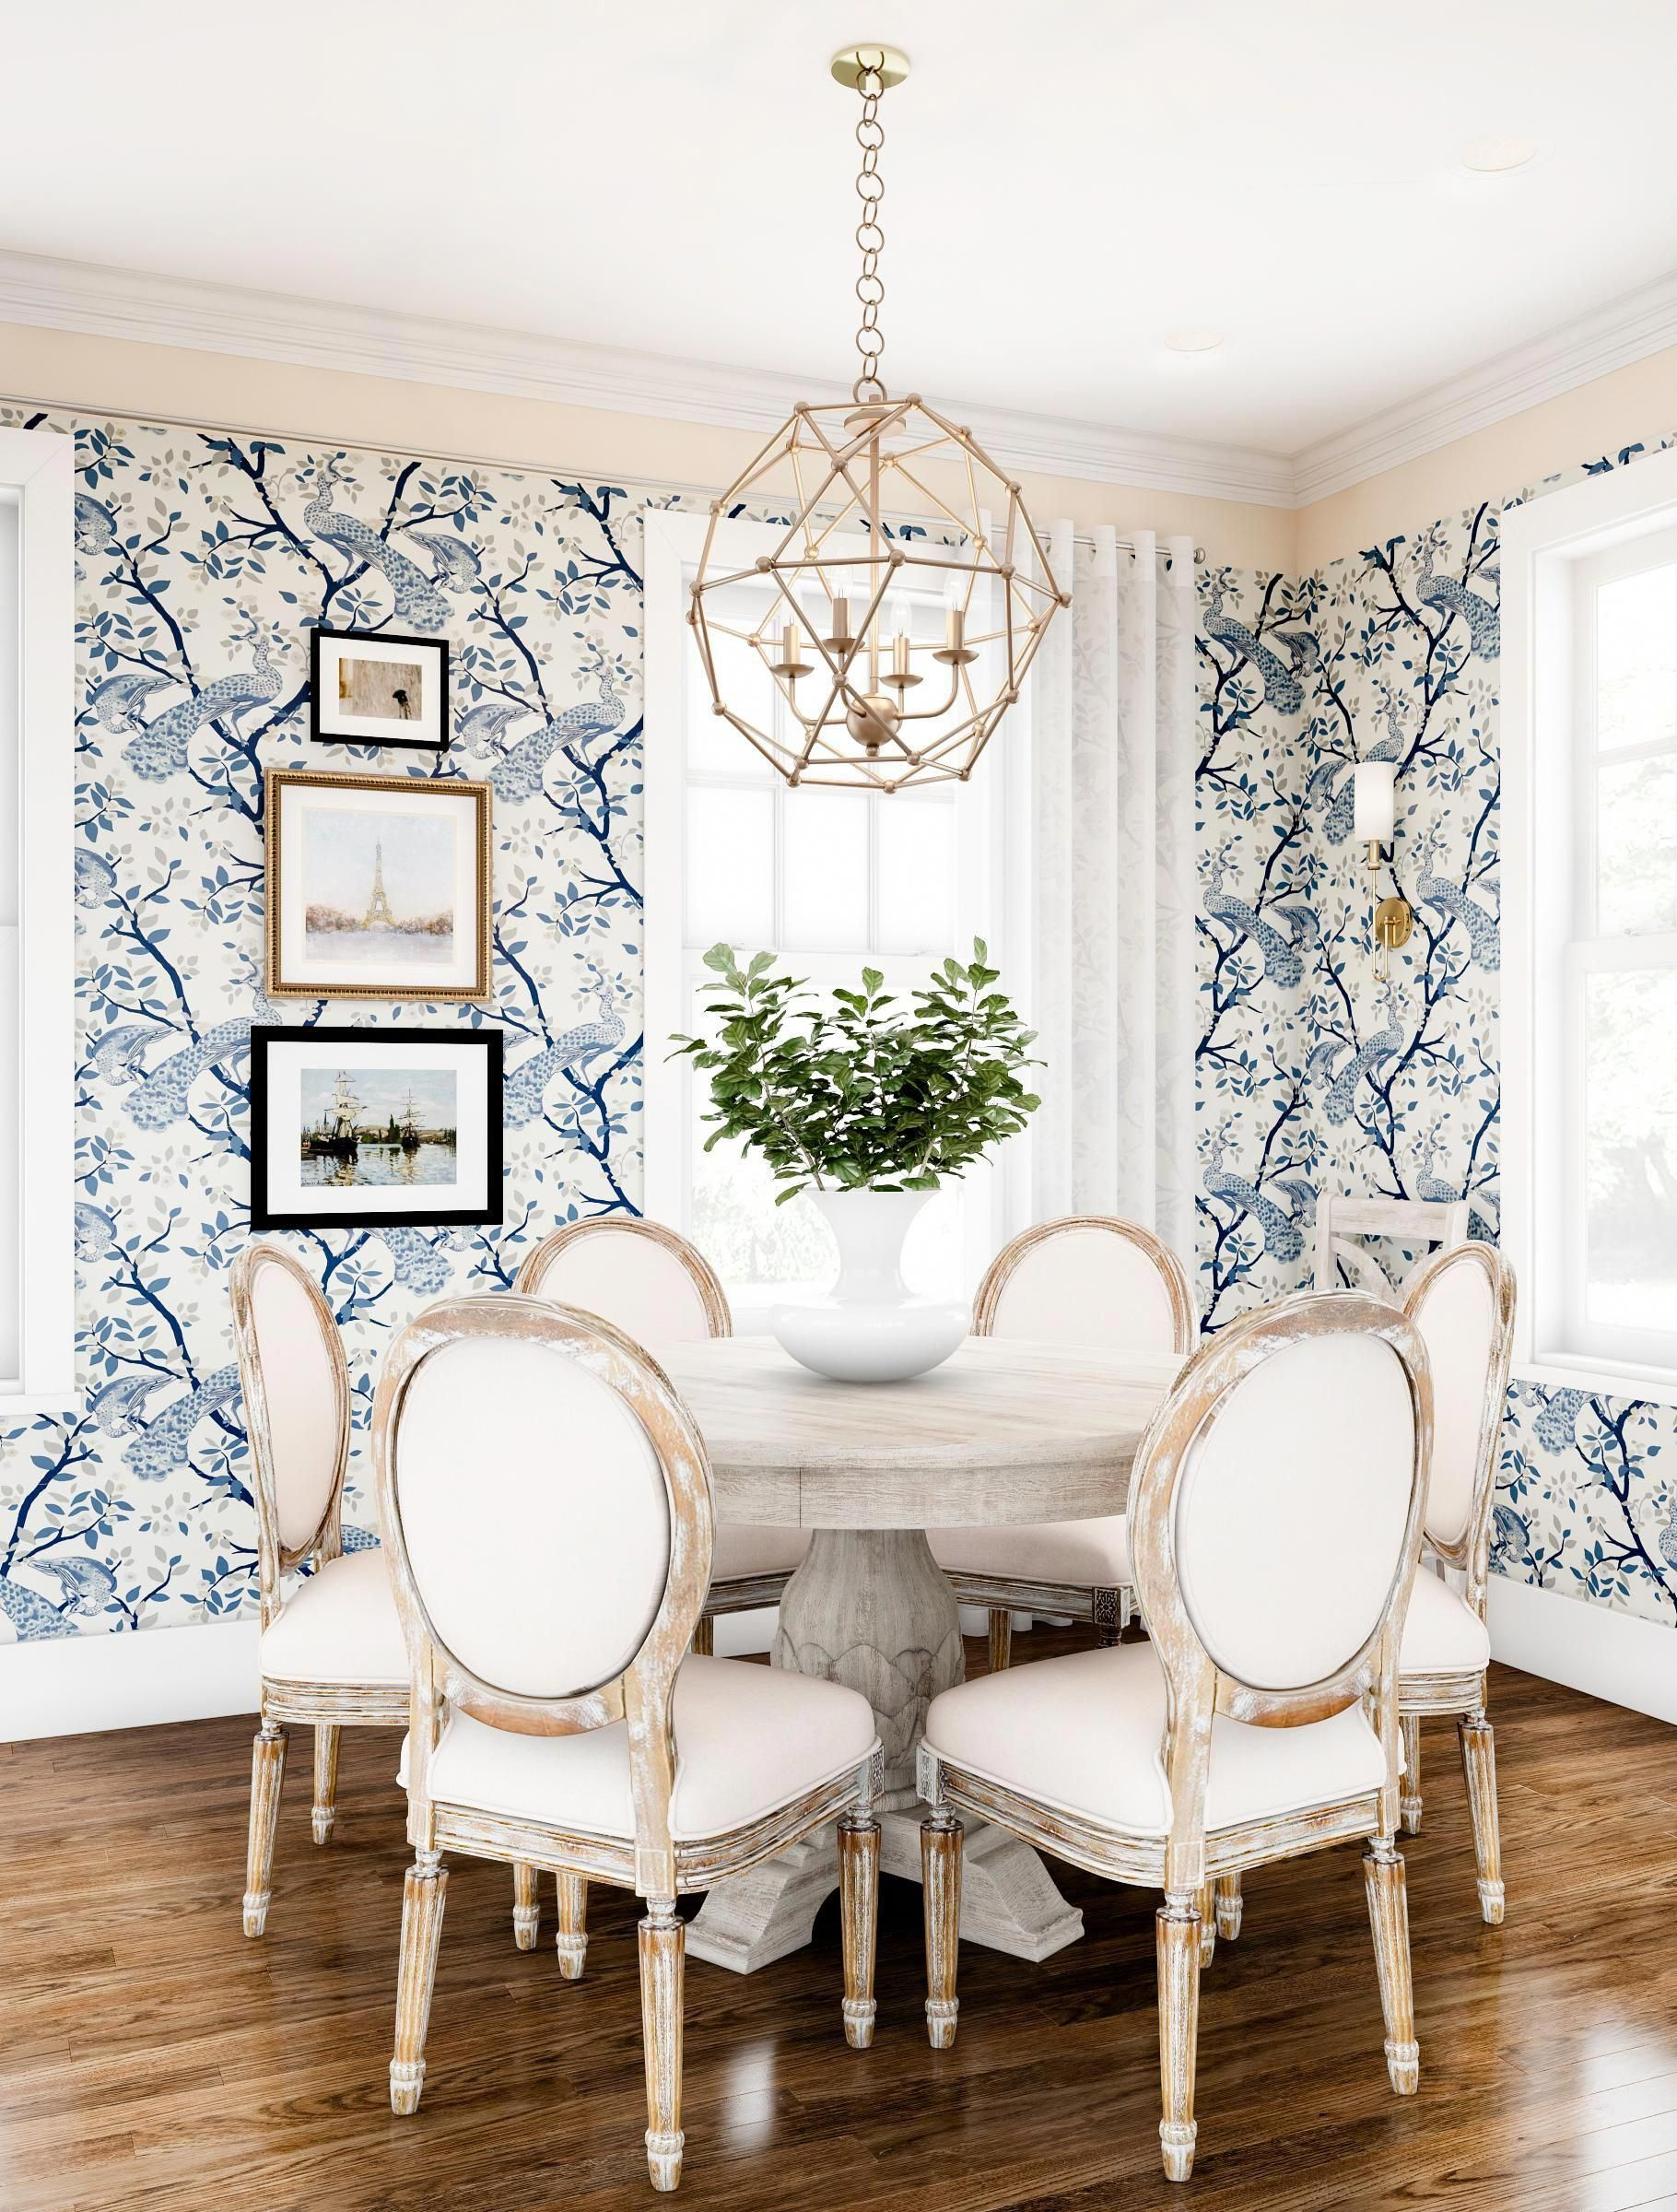 14 Amazing Dining Chairs And Table Set Of 2 Dining Chair With Arms